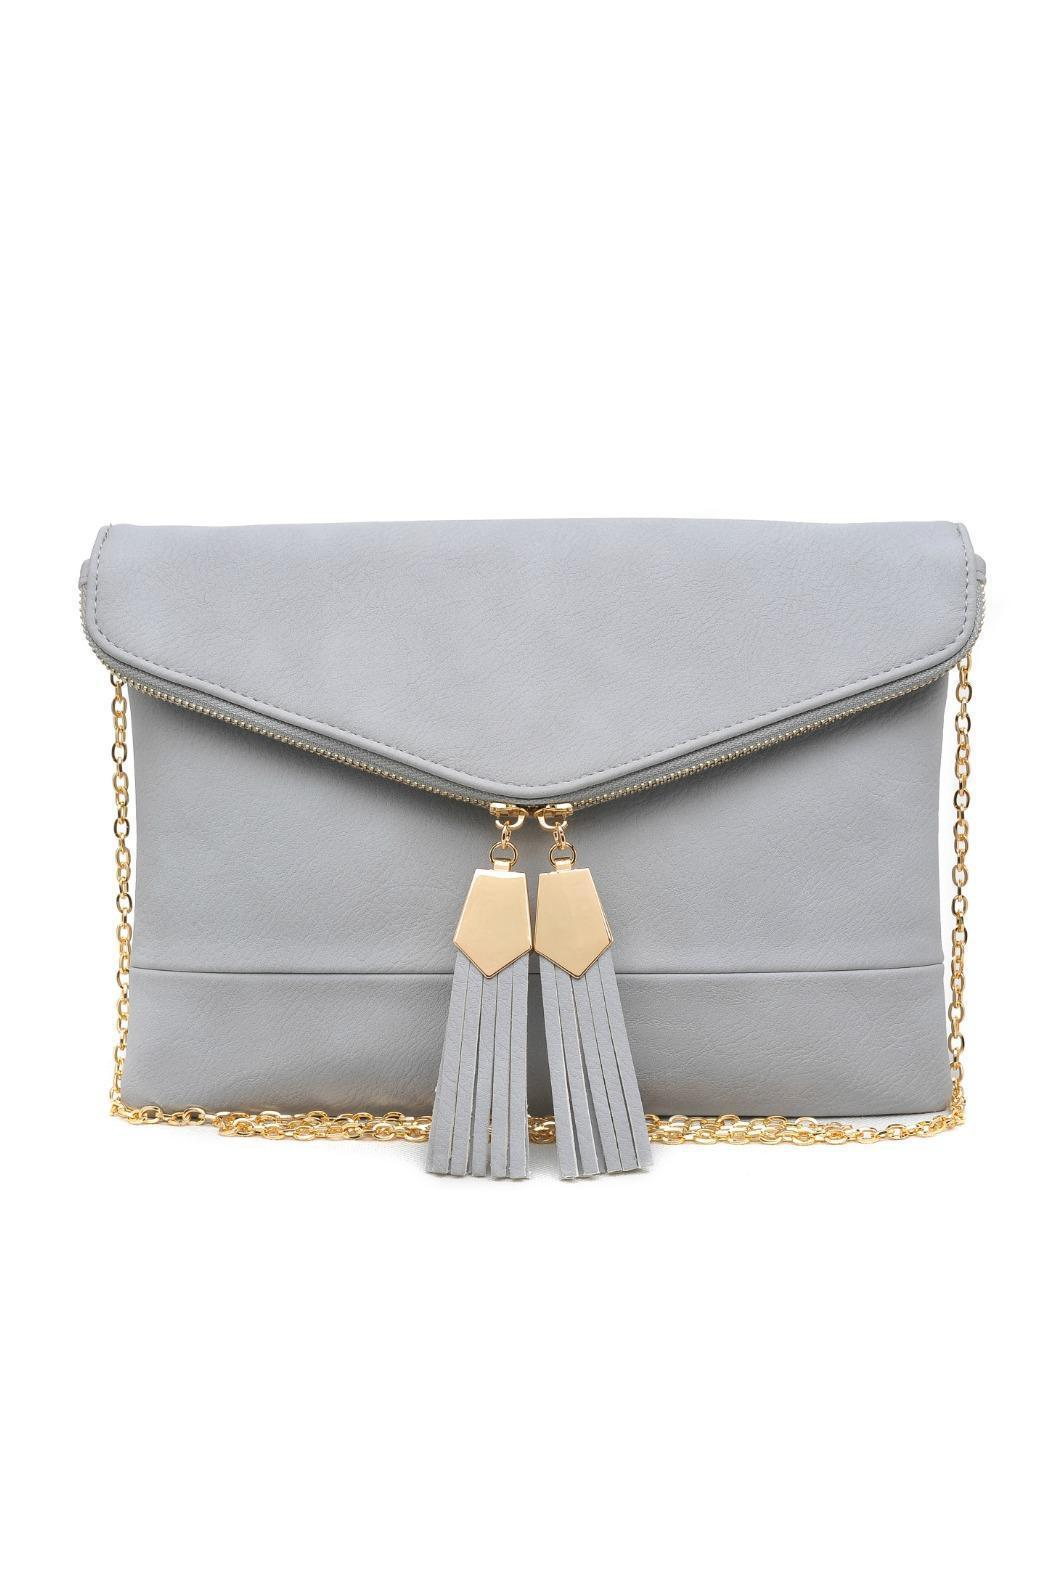 Urban Expressions Brooklyn Envelope Clutch - Main Image